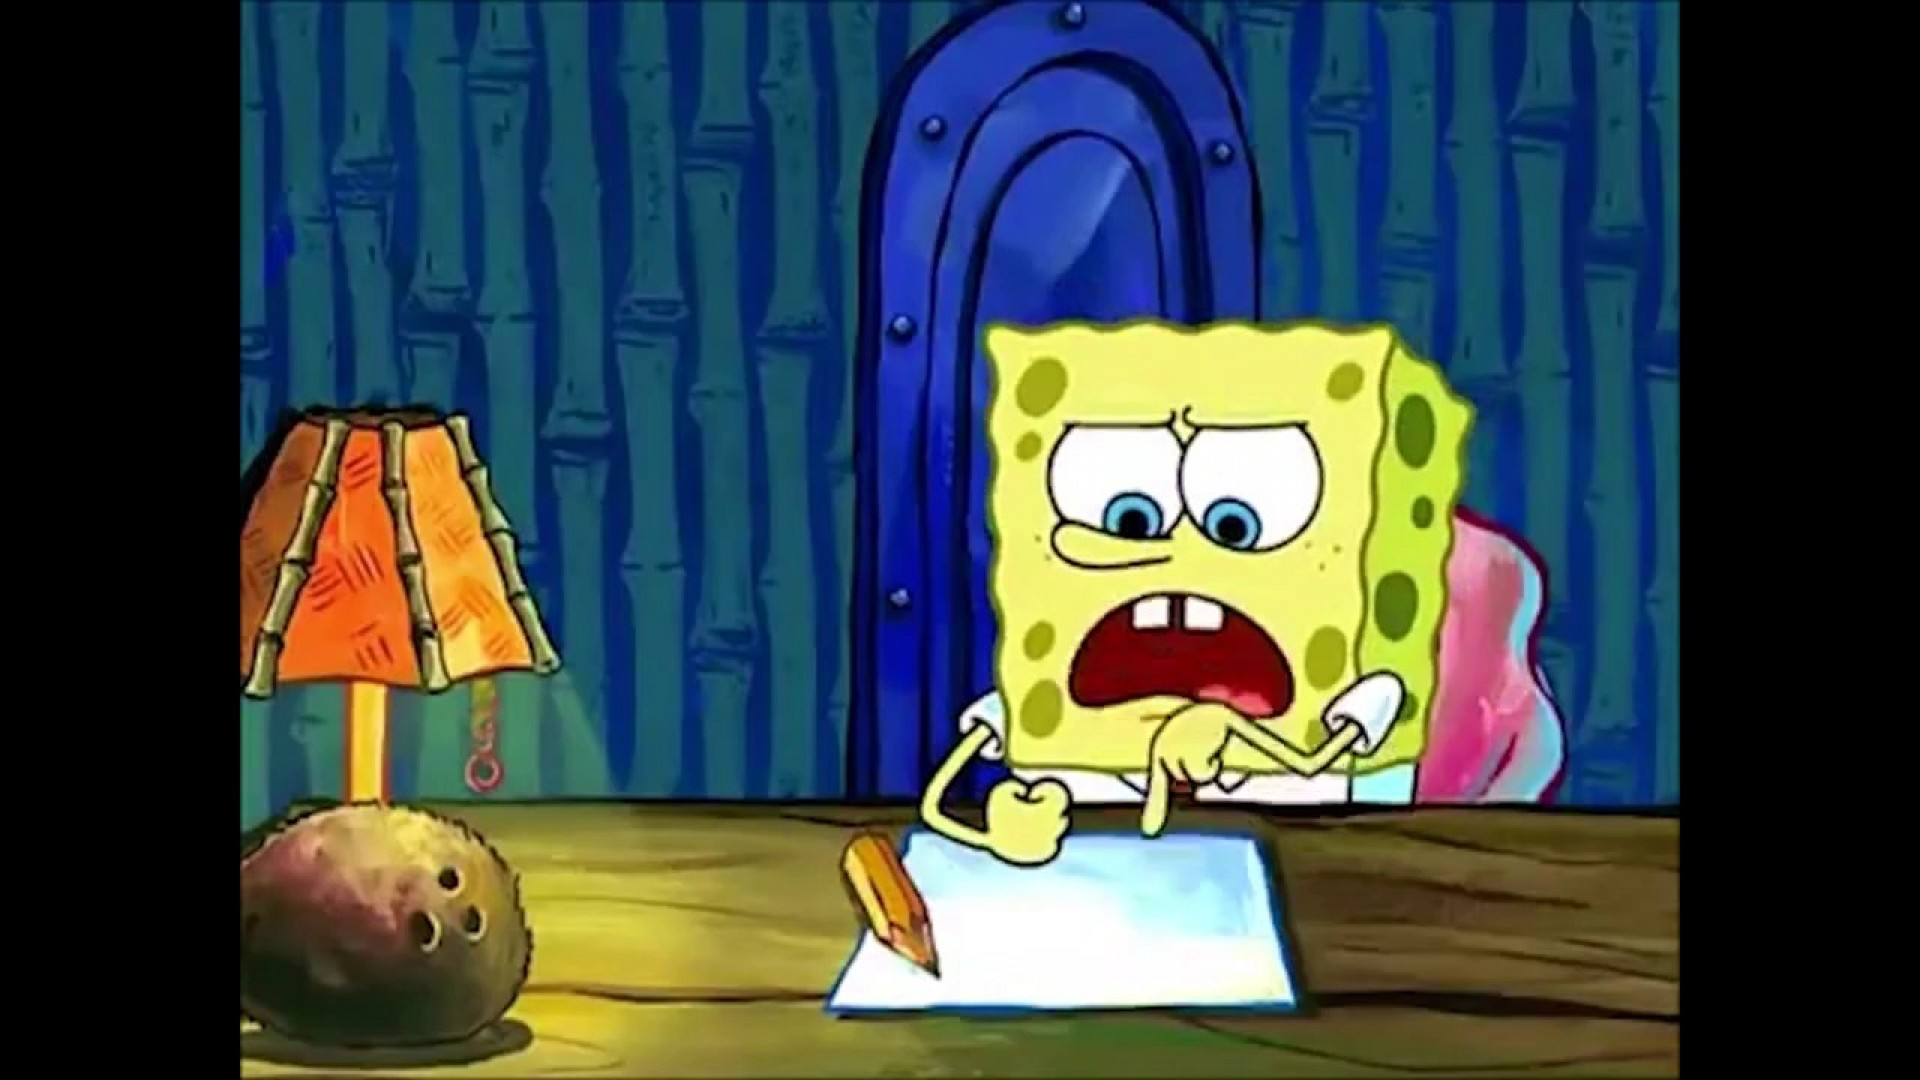 008 Essay Example Spongebobs Youtube Maxresde Spongebob Writing For Hours Rap The Font Meme Remarkable Gif 1920